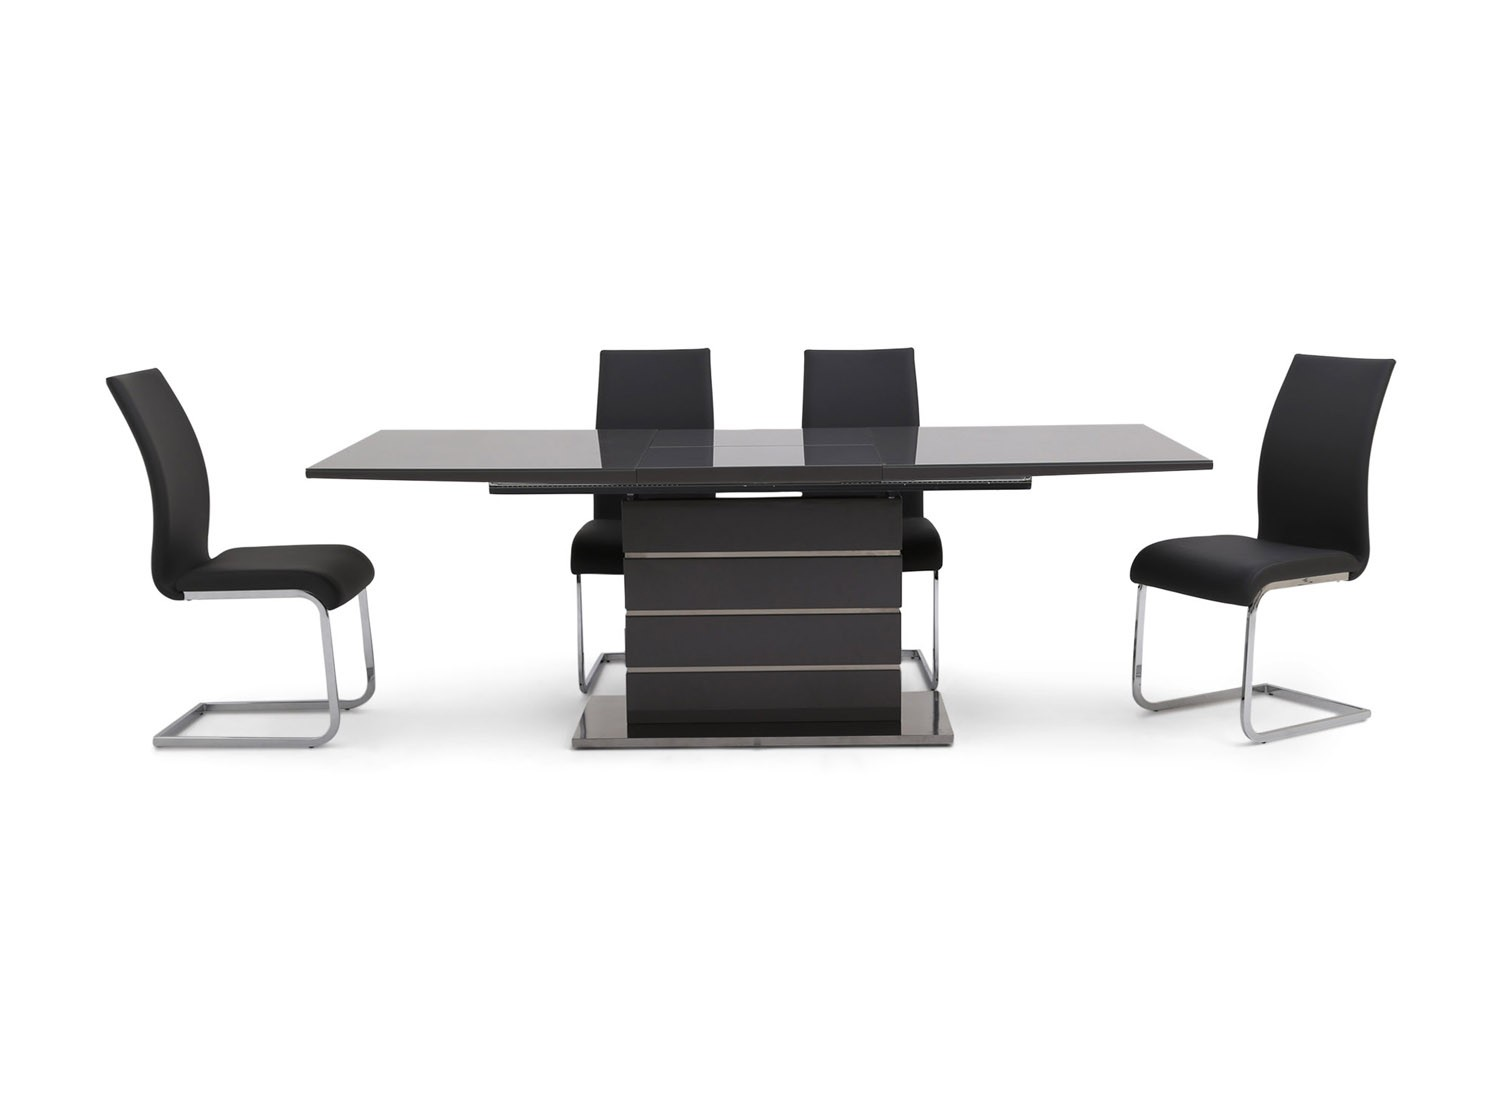 https://www.firstfurniture.co.uk/pub/media/catalog/product/f/a/fairmont_massimo_ext_grey_high_gloss_dining_table_6_paolo_grey_chairs.jpg